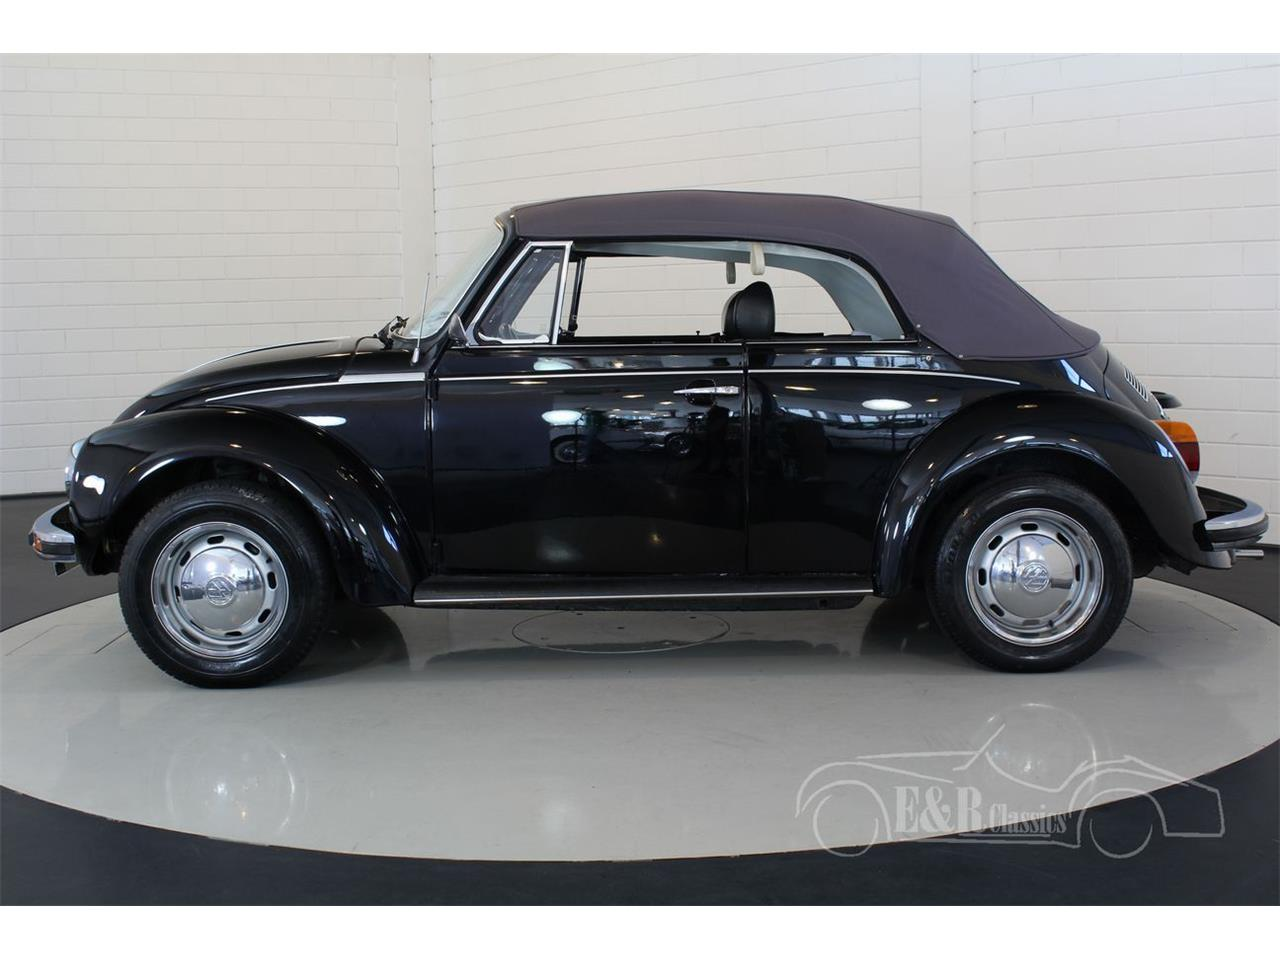 Large Picture of 1977 Volkswagen Beetle located in Noord Brabant - $28,450.00 - N8E6